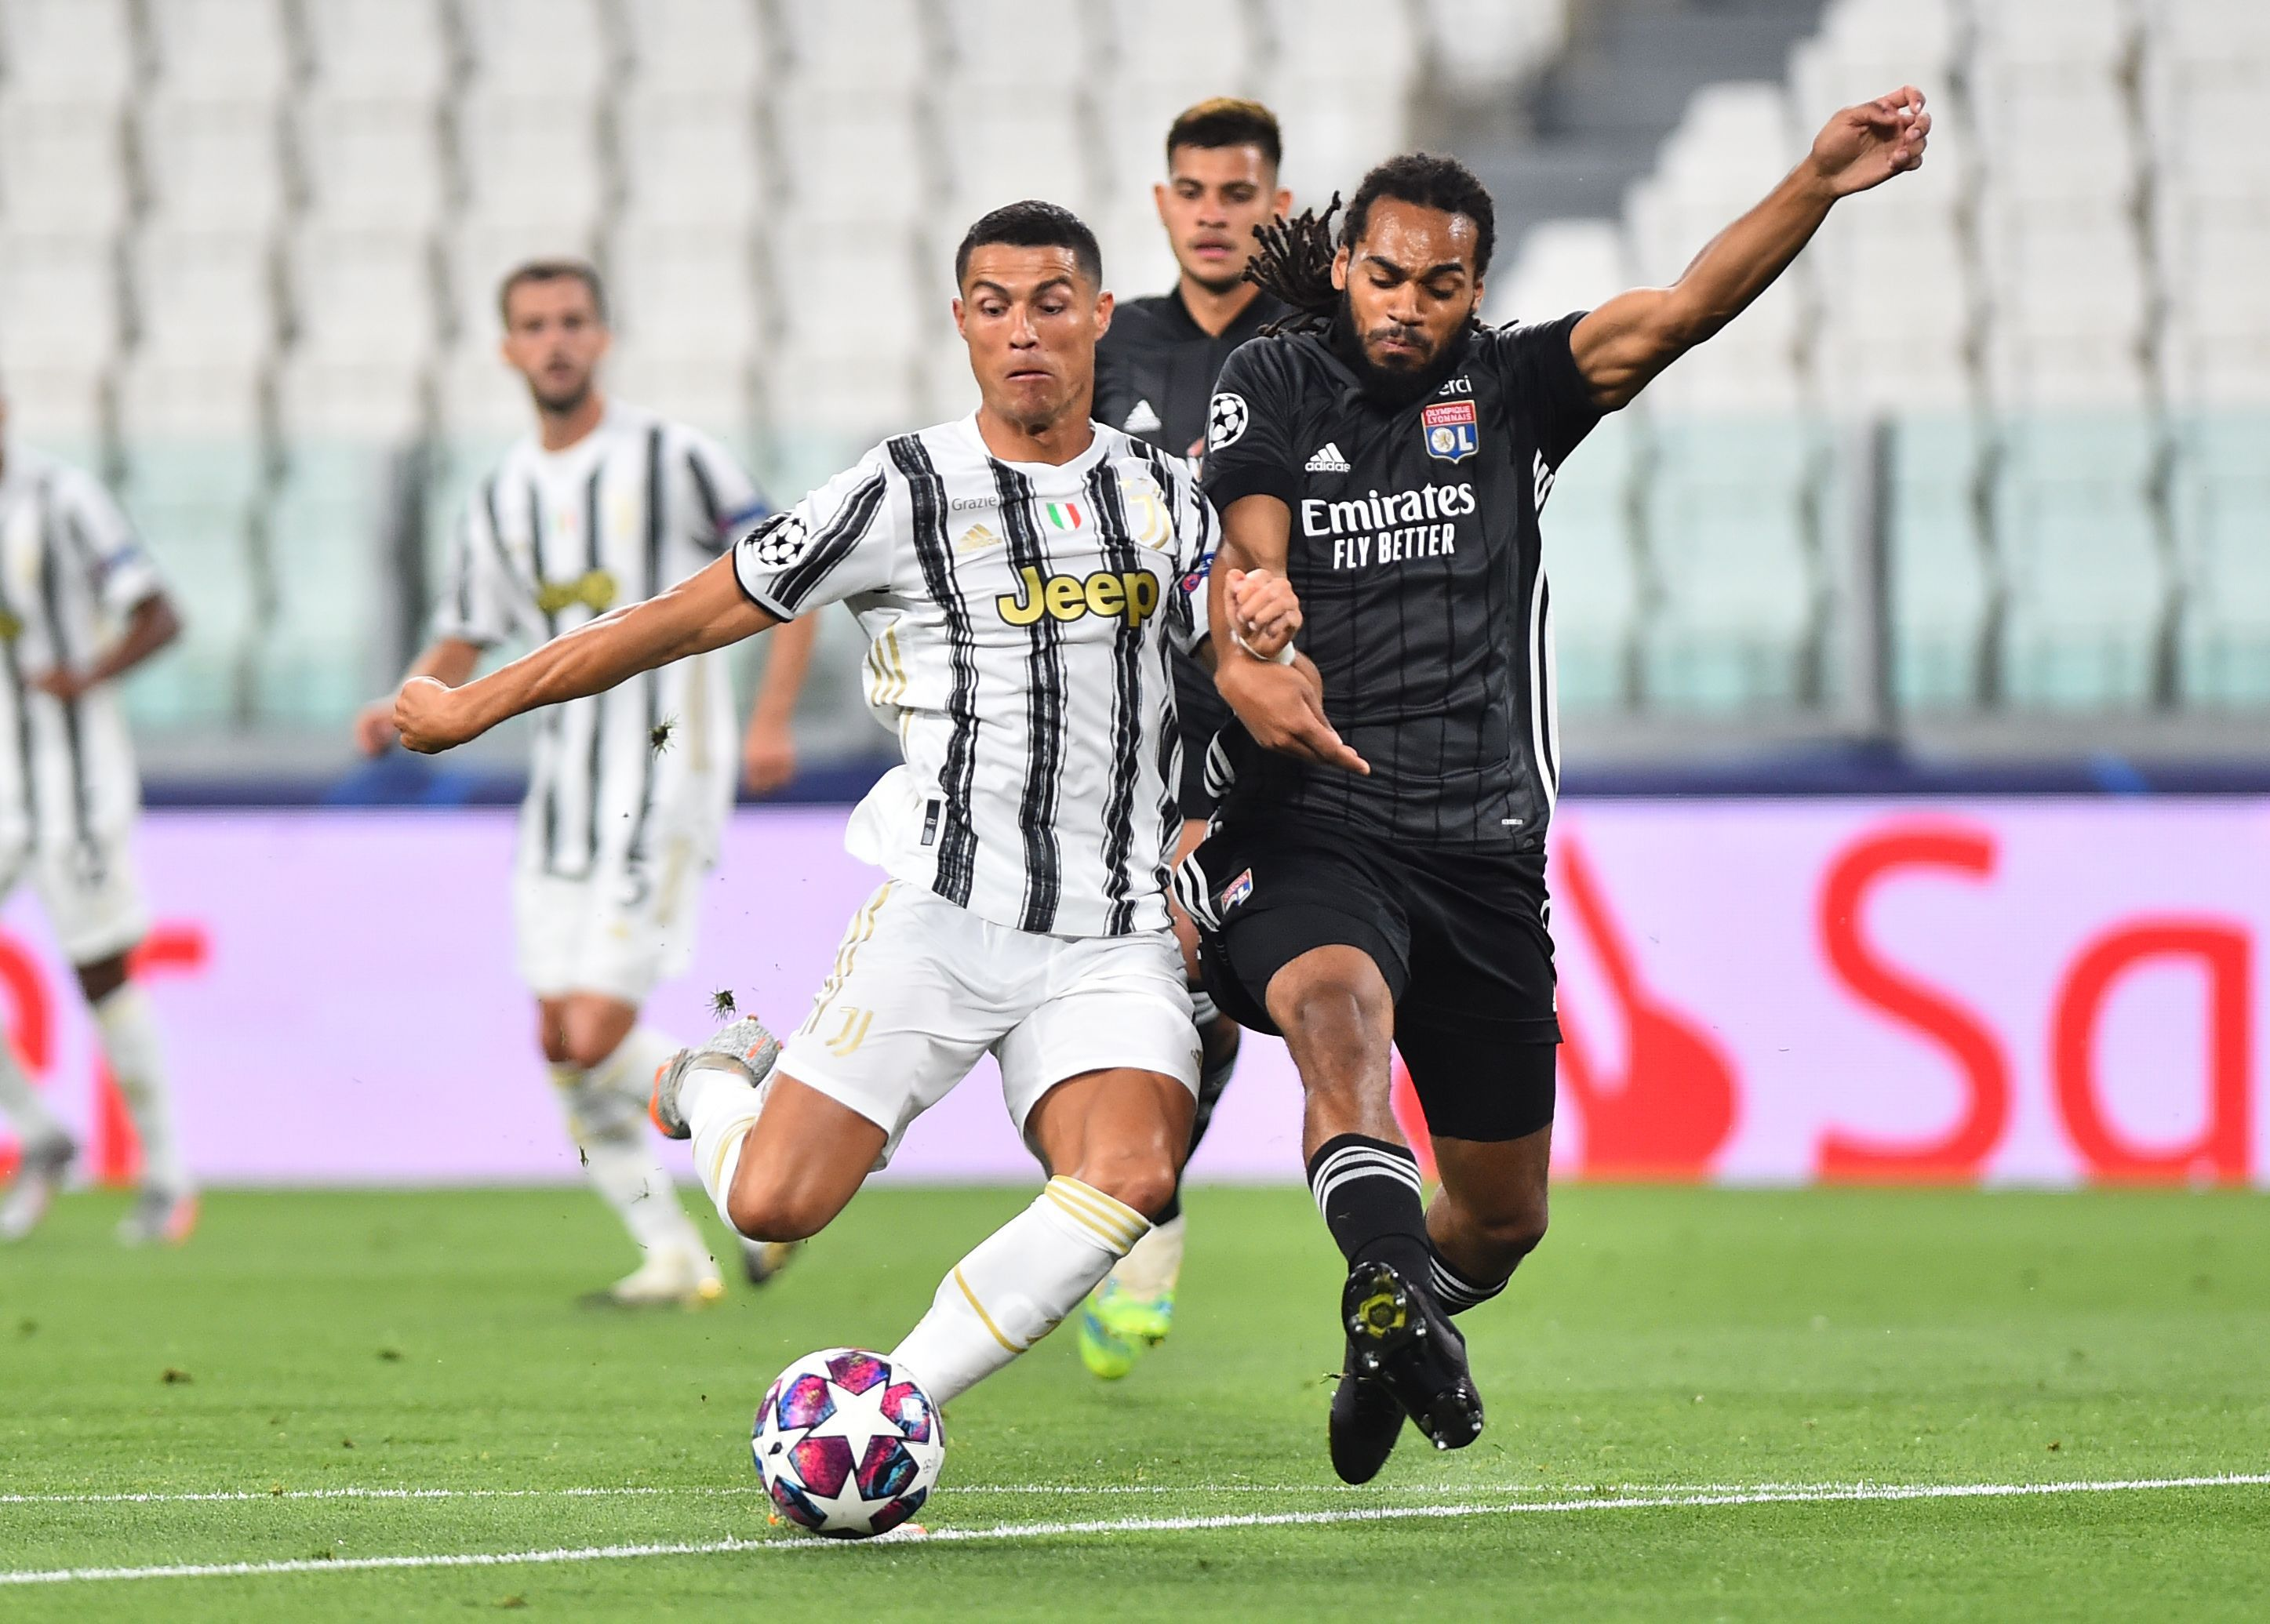 Soccer Football - Champions League - Round of 16 Second Leg - Juventus v Olympique Lyonnais - Allianz Stadium, Turin, Italy - August 7, 2020   Juventus' Cristiano Ronaldo in action with Olympique Lyonnais' Jason Denayer, as play resumes behind closed doors following the outbreak of the coronavirus disease (COVID-19) REUTERS/Massimo Pinca